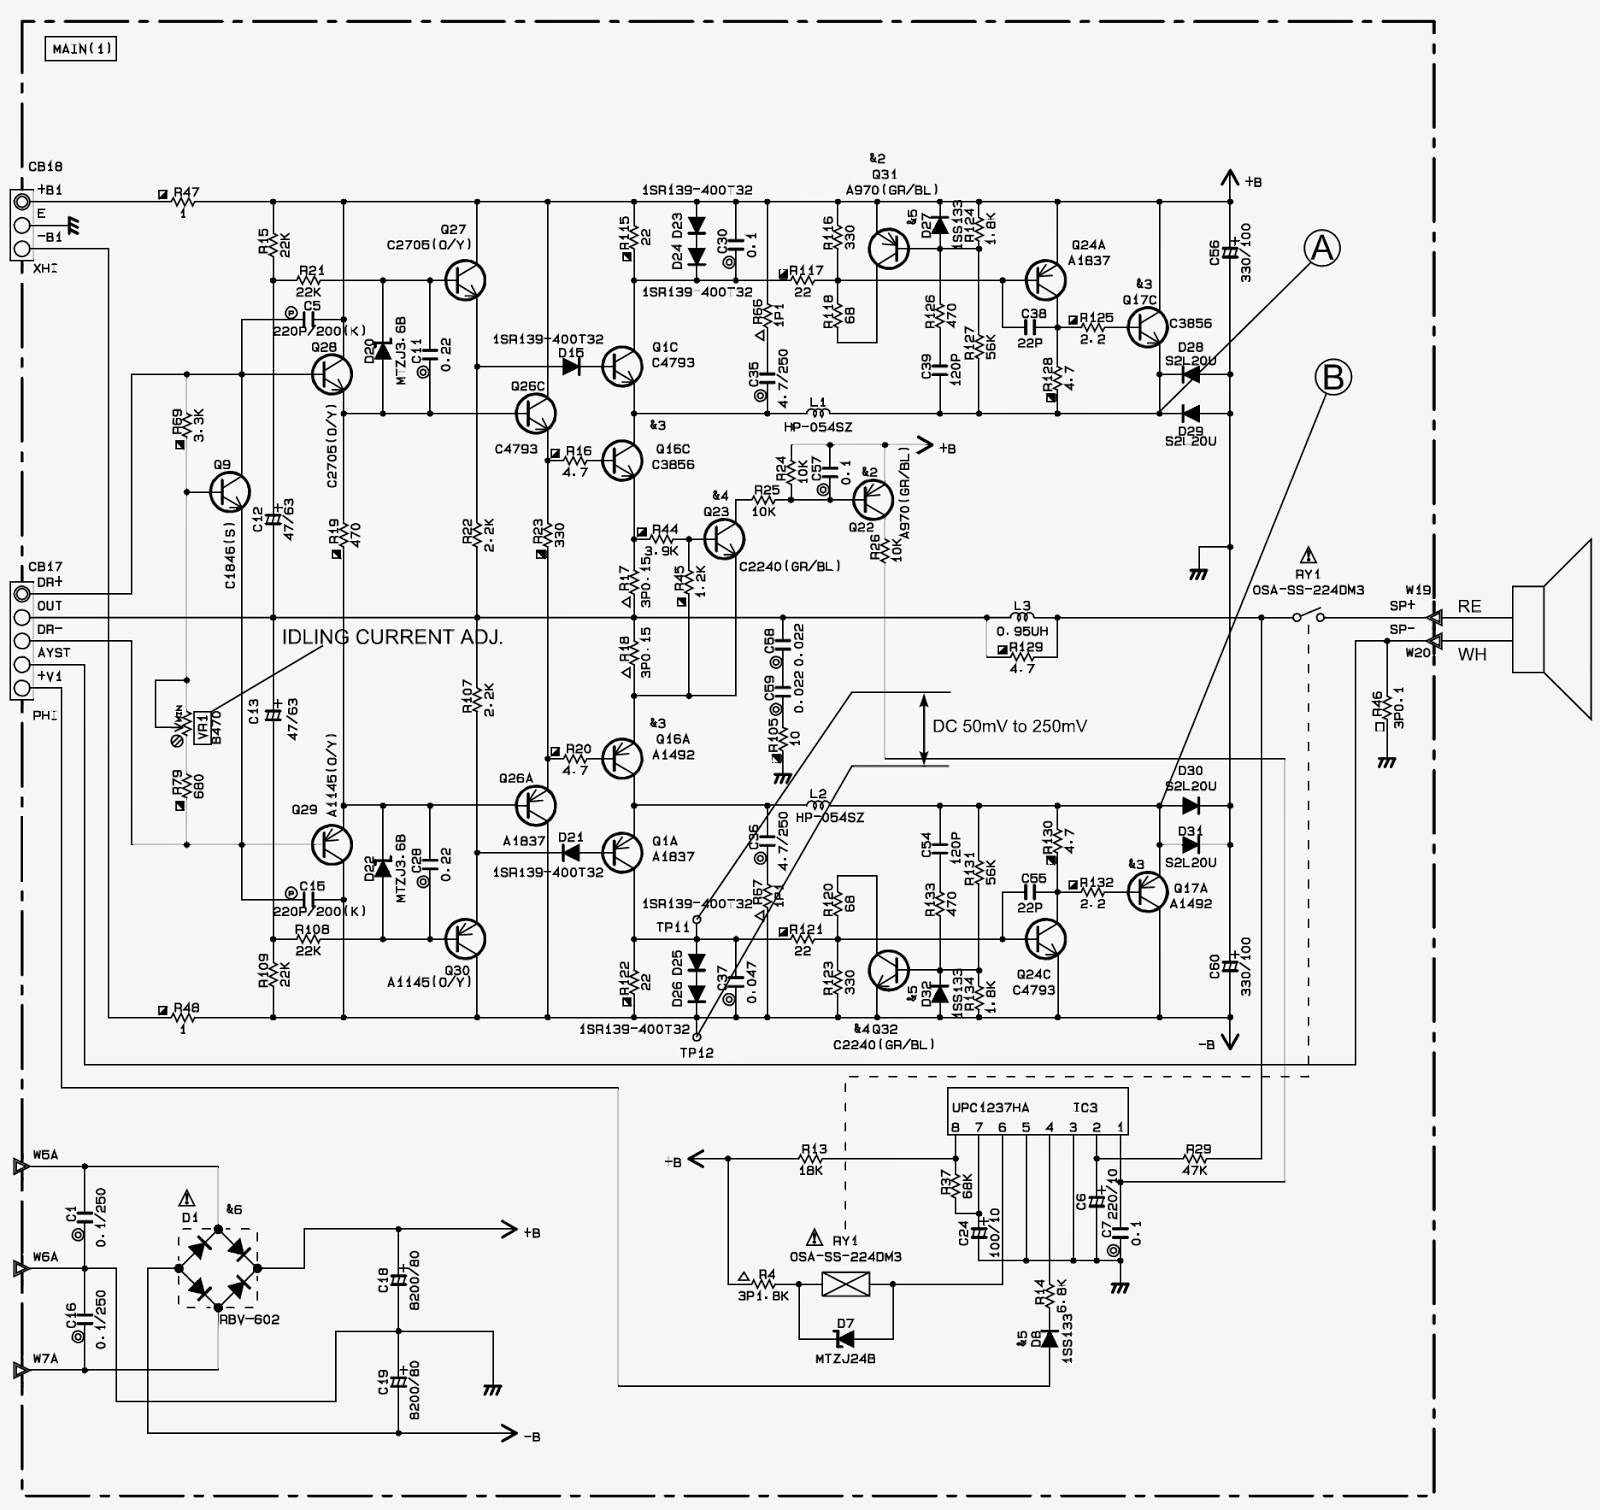 untitled.bmp yamaha yst sw320 schematic (circuit diagram) _ sub woofer yamaha schematic diagram at nearapp.co